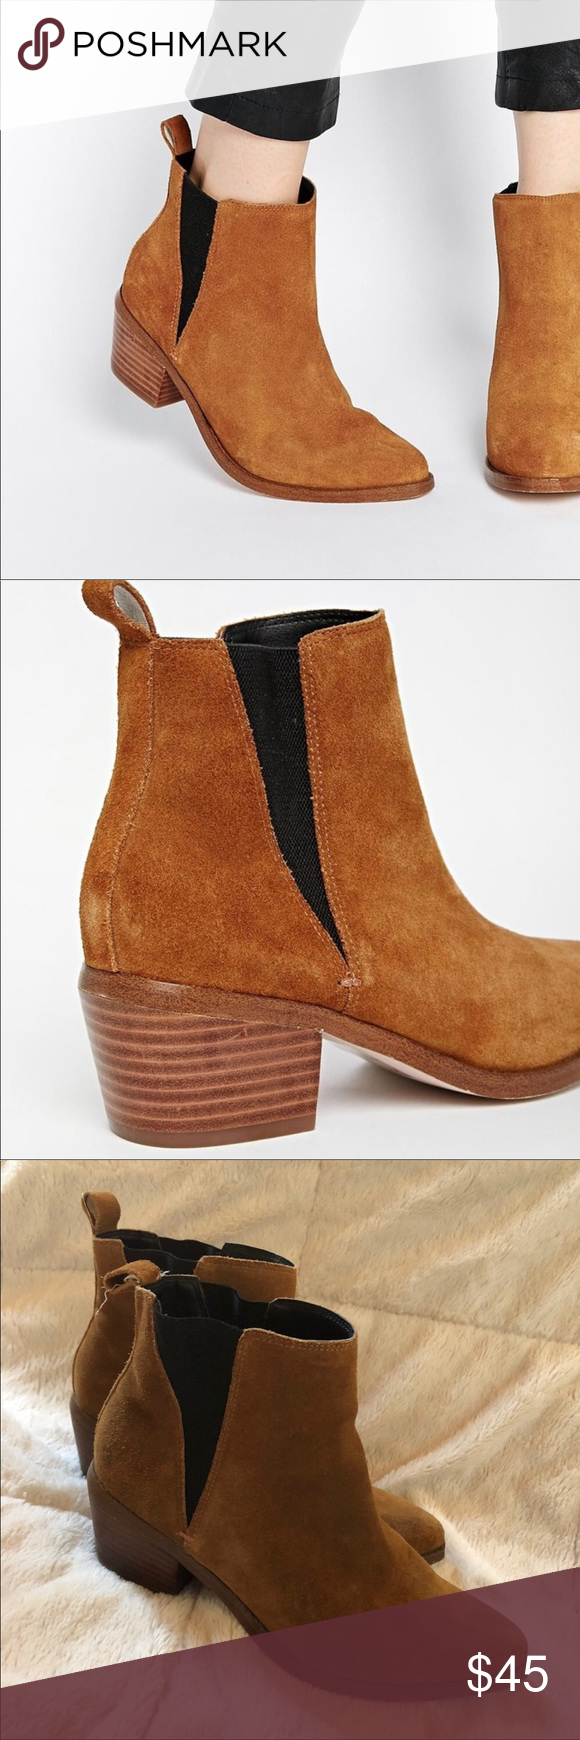 d27477dcdfc5 ASOS RISKED IT Pointed Suede Western Chelsea Boots Has one spot on left boot  as shown in second pic ASOS Shoes Ankle Boots   Booties